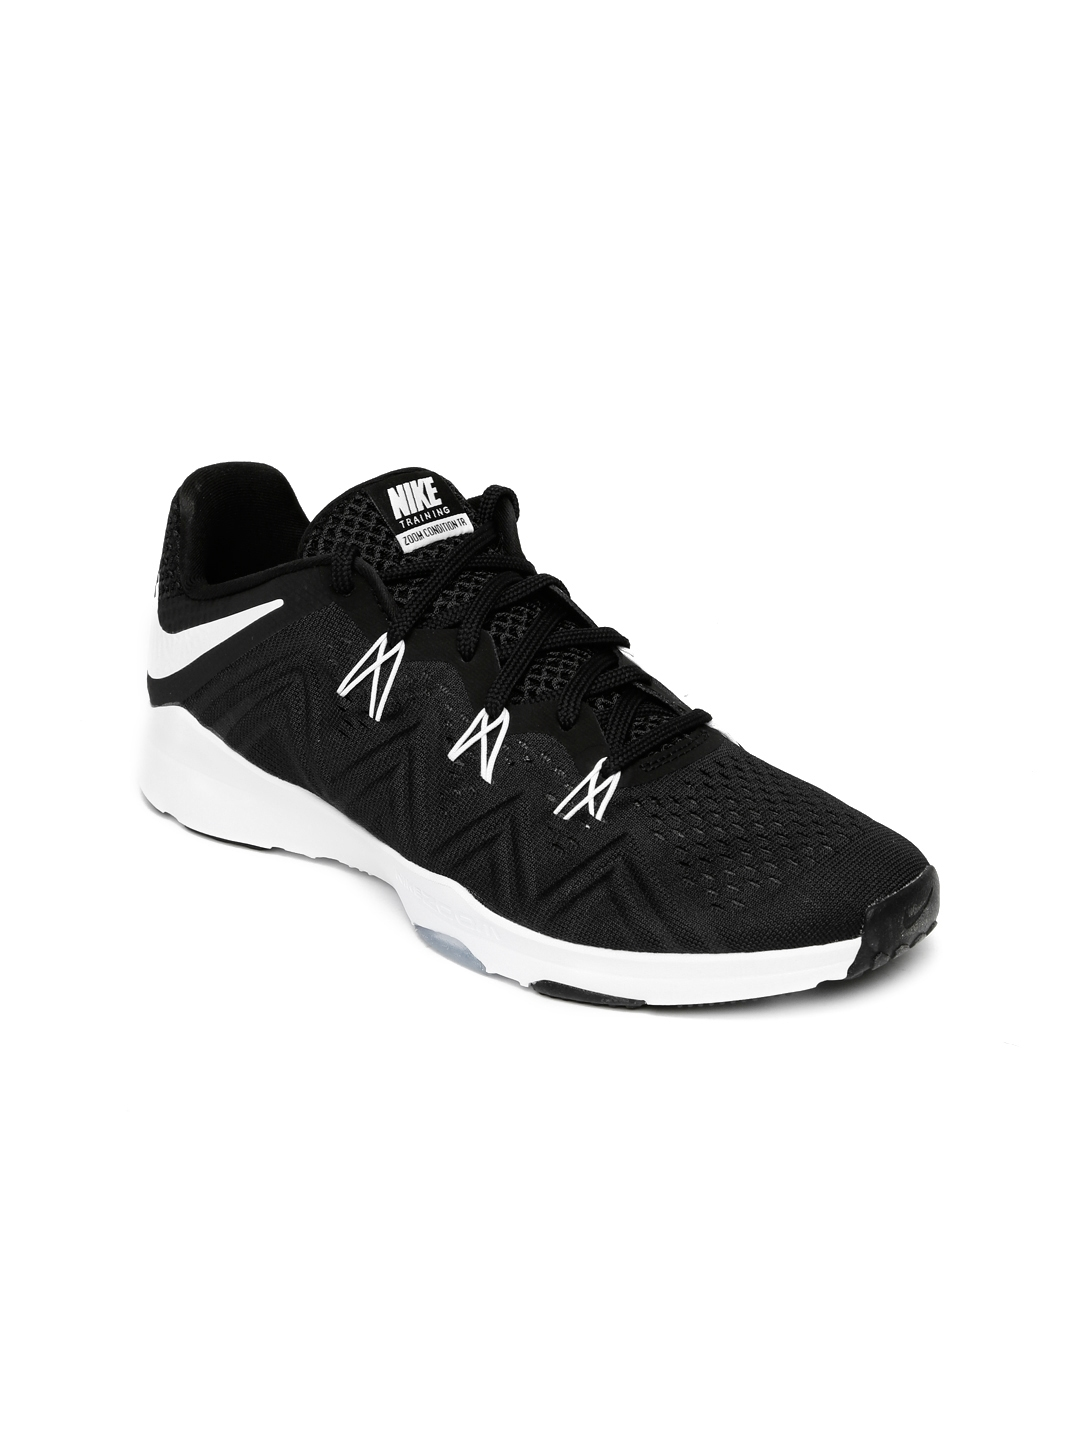 0705c6eb1295 Buy Nike Women Black ZOOM CONDITION TR Training Shoes - Sports Shoes ...